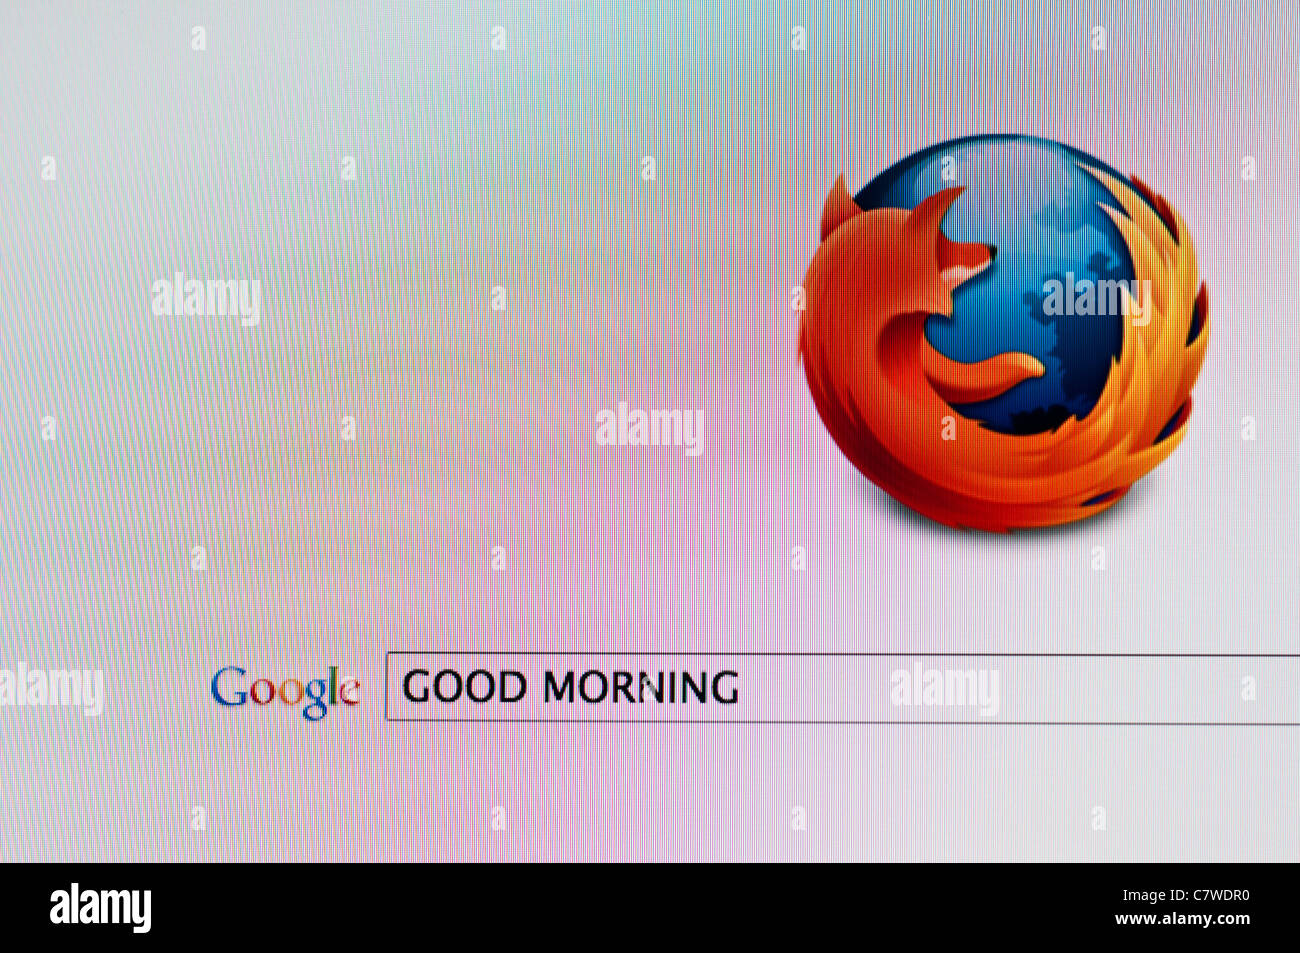 Computer screen with Google search on Firefox browser for 'Good morning' - Stock Image